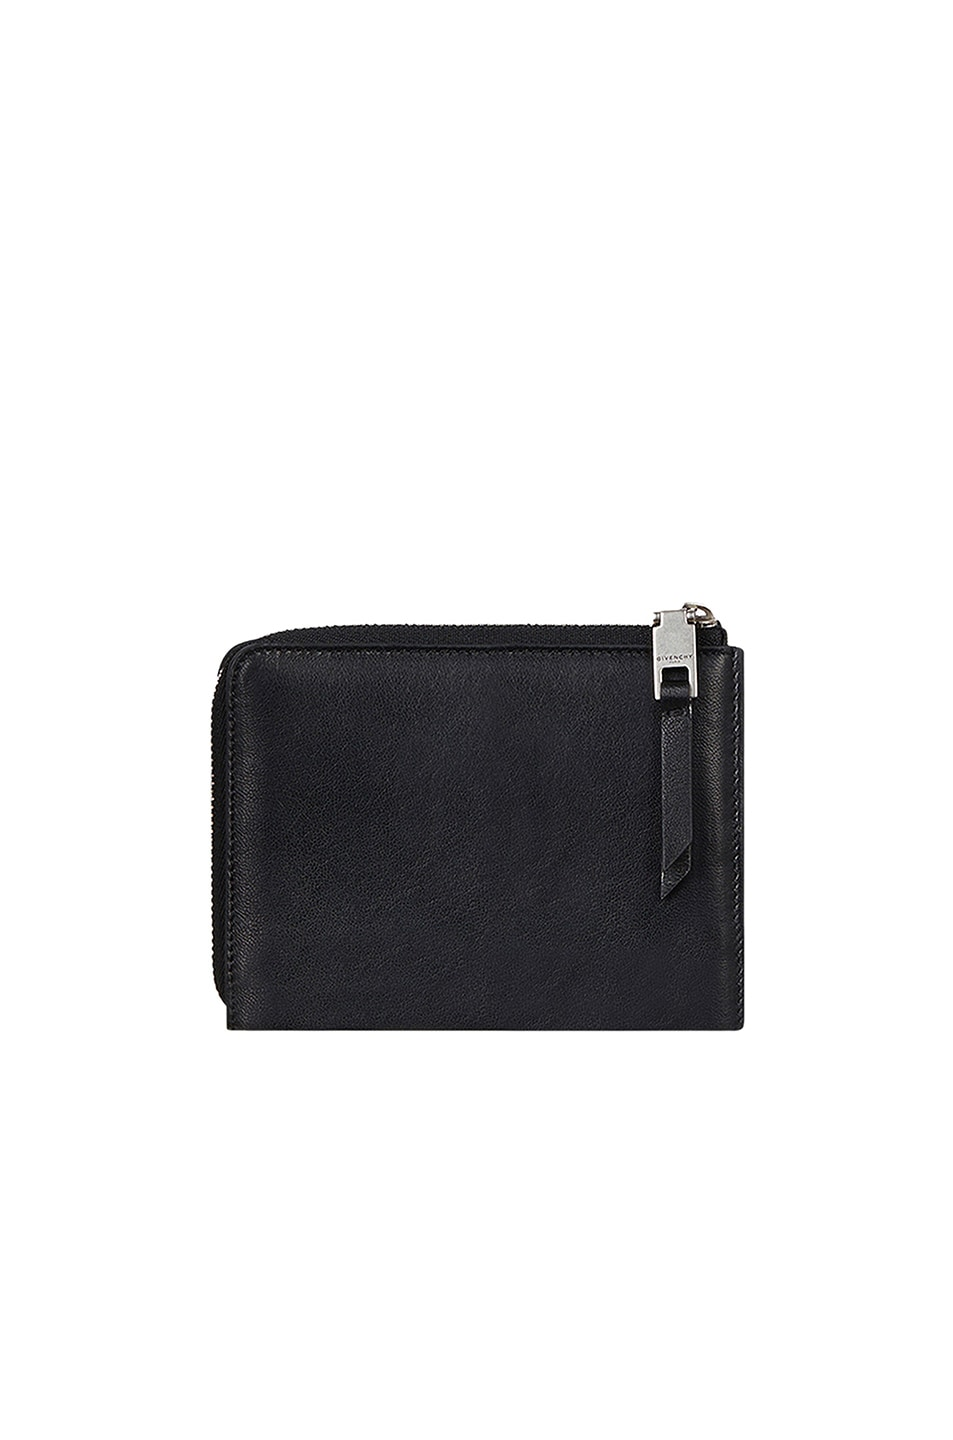 Image 2 of Givenchy Medium Emblem Zip Wallet in Black